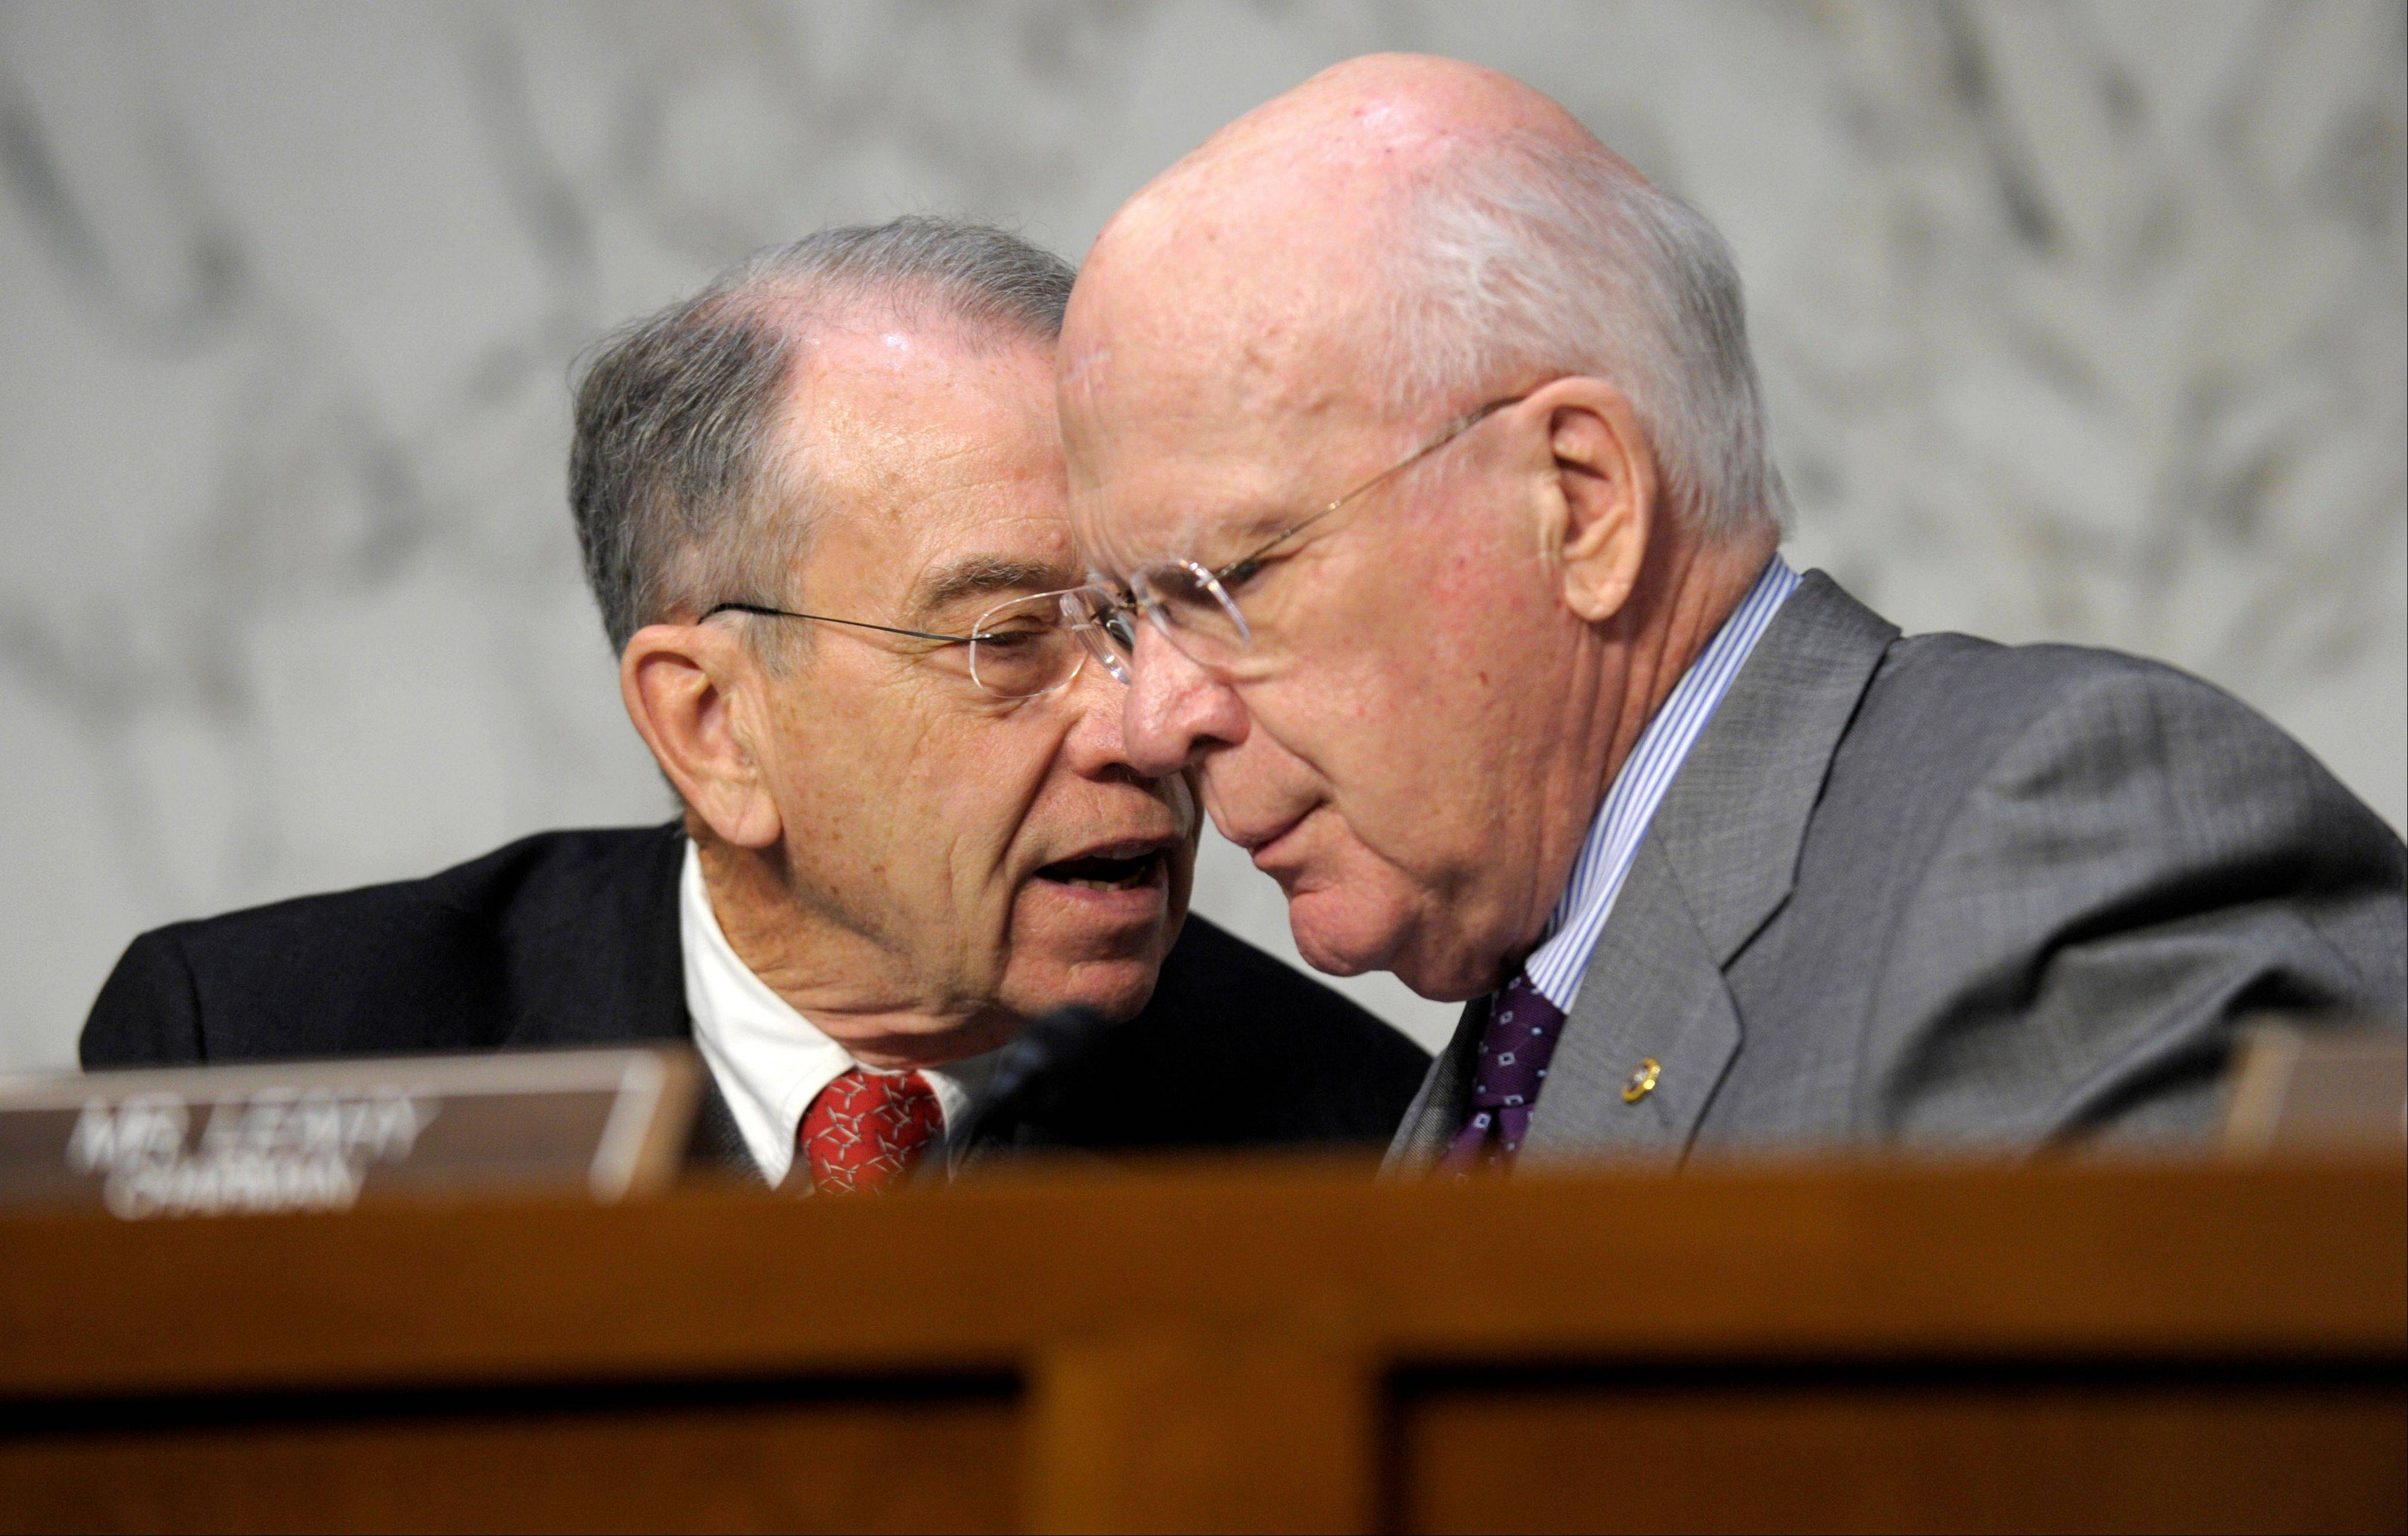 The Senate Judiciary Committee, led by chairman Patrick Leahy, right, approved legislation Thursday toughening laws against people who illegally buy guns for others as lawmakers cast their first votes in Congress to curb firearms since December's horrific shootings at a Connecticut elementary school.